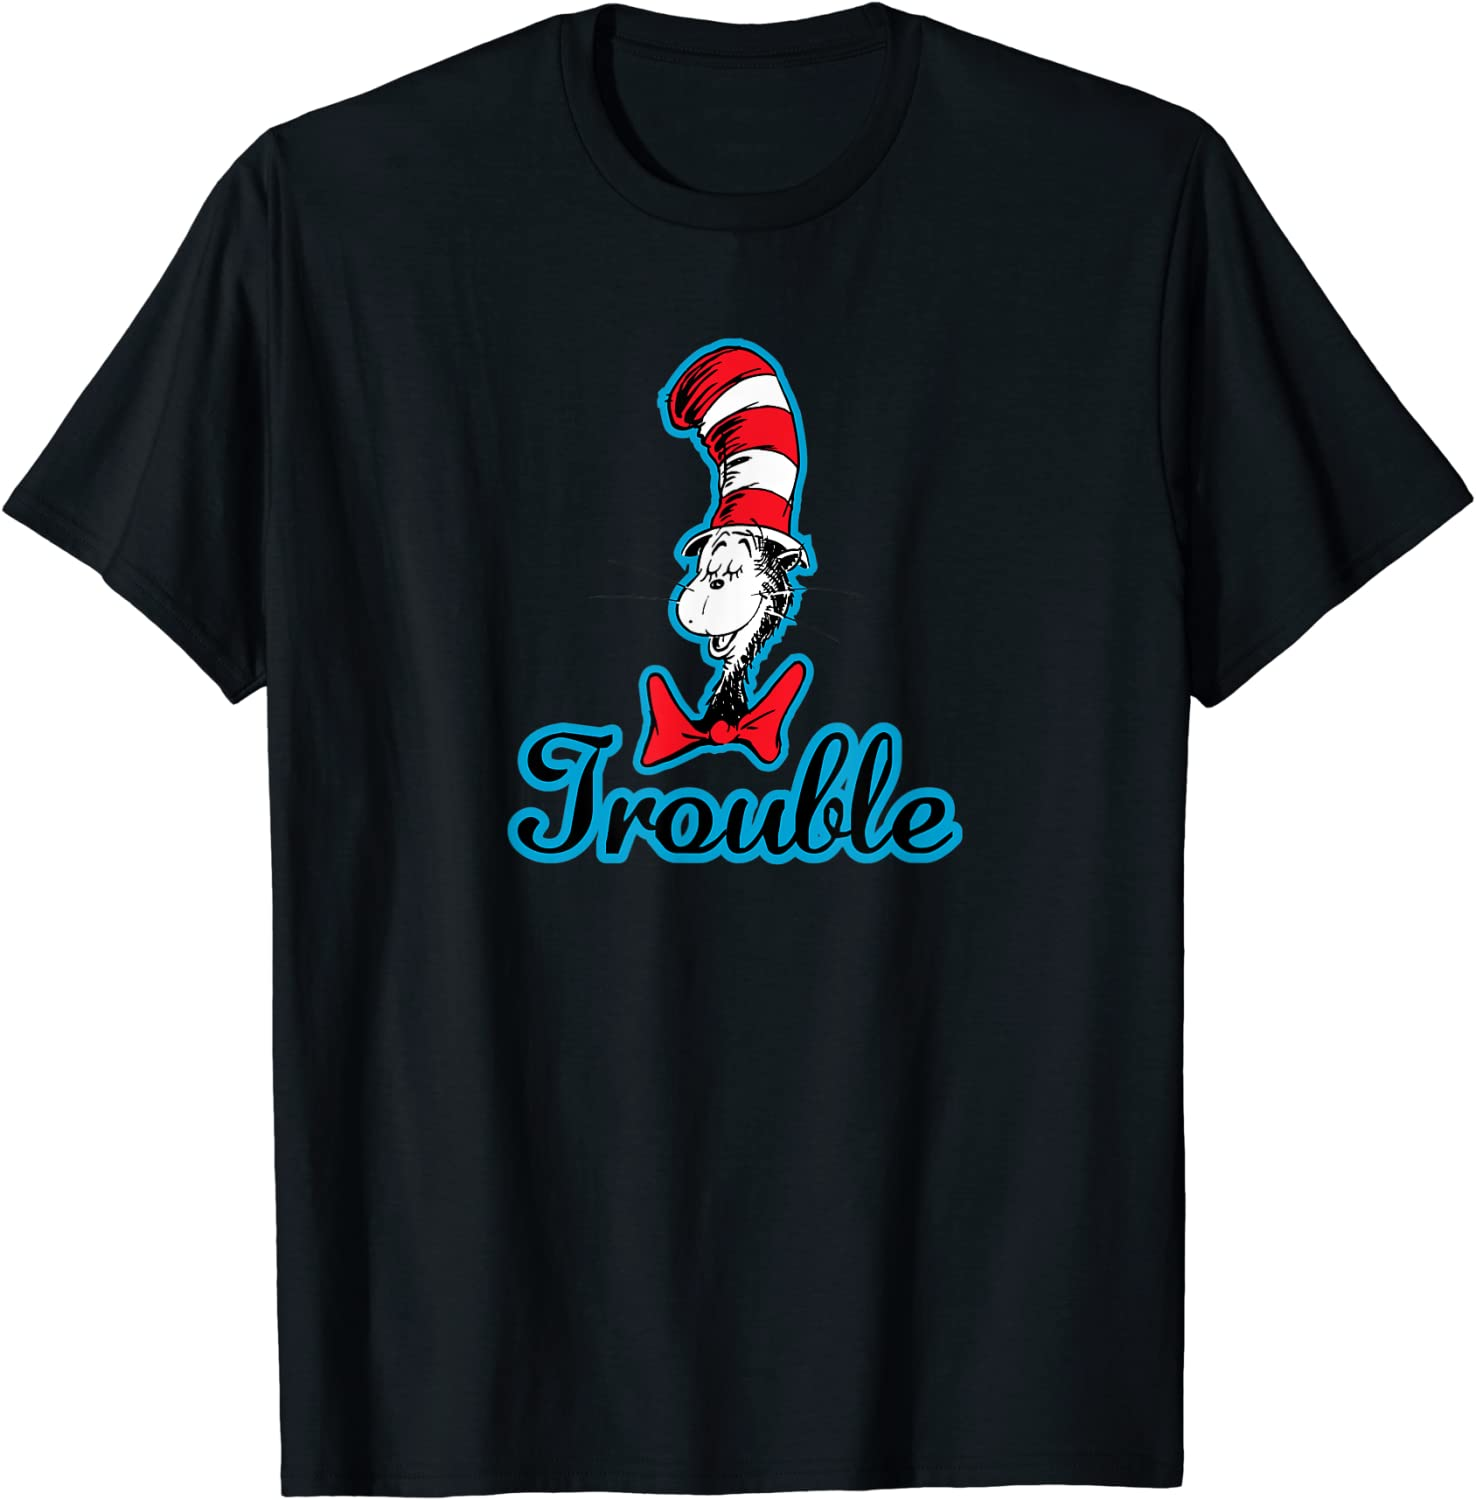 Dr. Seuss The Cat in the Hat Trouble T-shirt